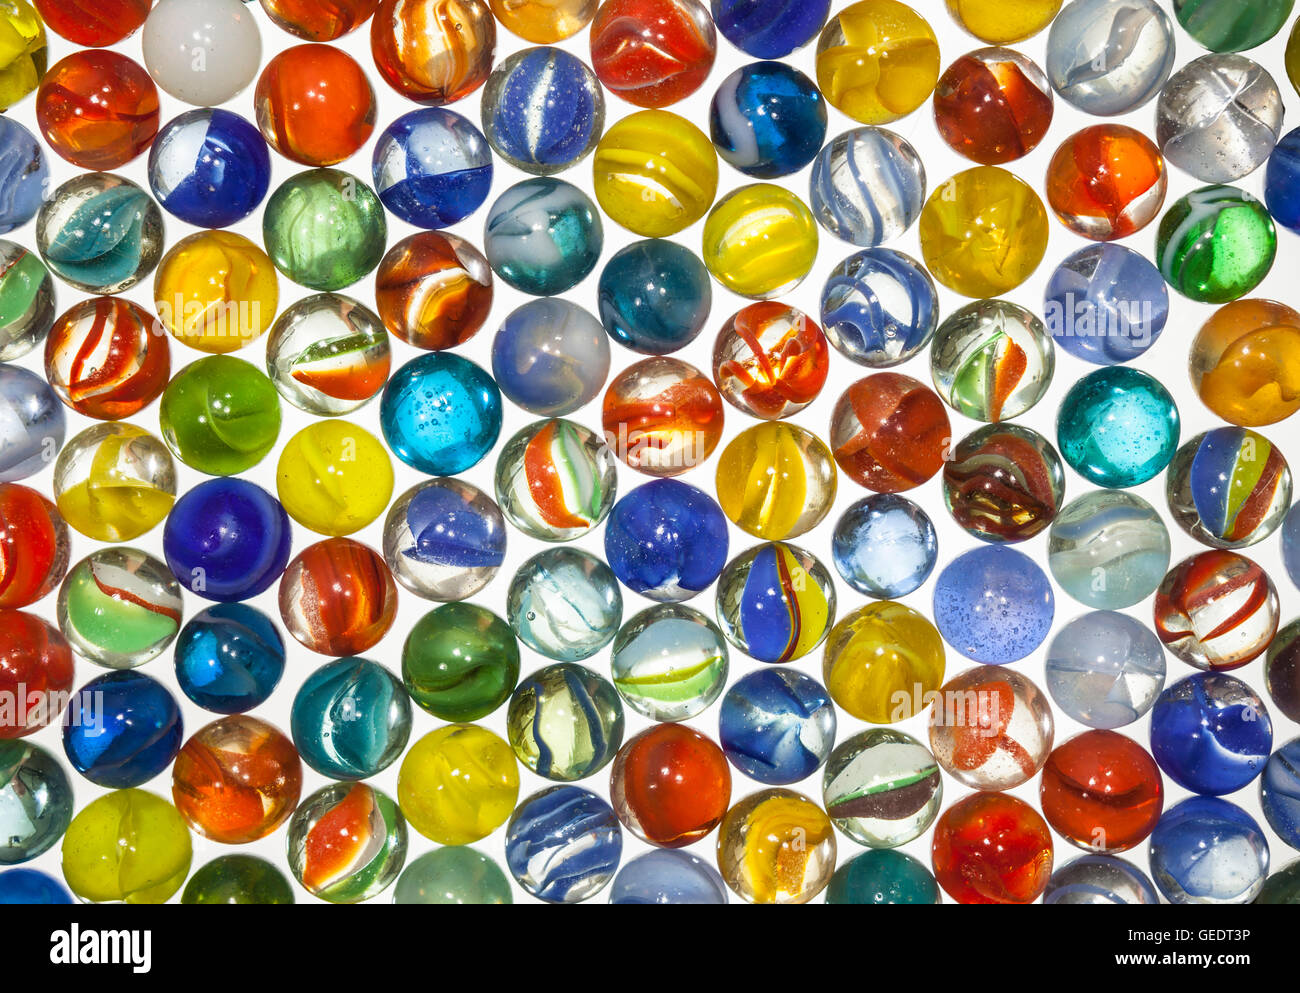 Old toy translucent marbles macro. - Stock Image